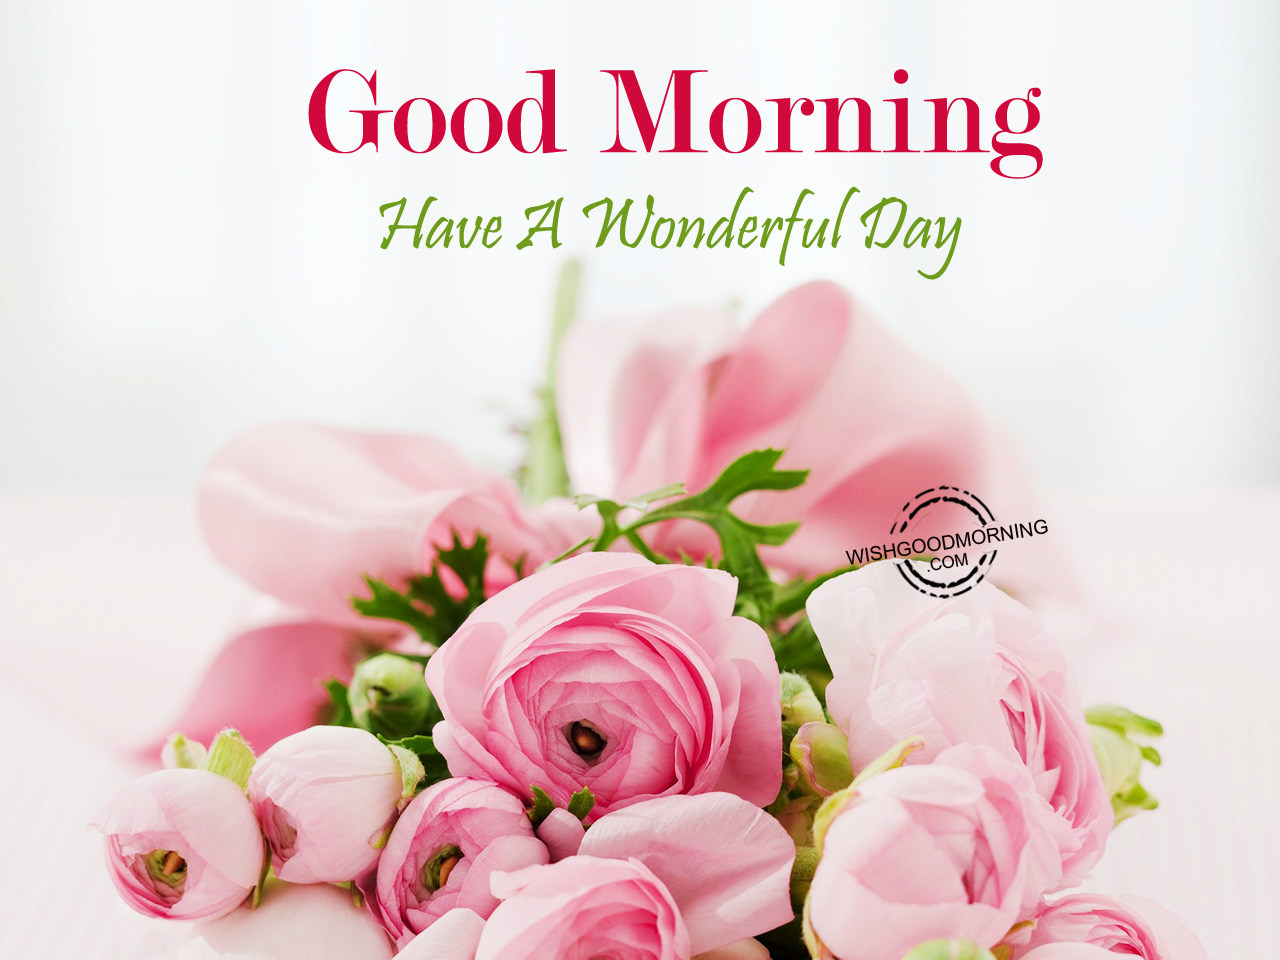 Have A Wonderful Day Good Morning Good Morning Pictures